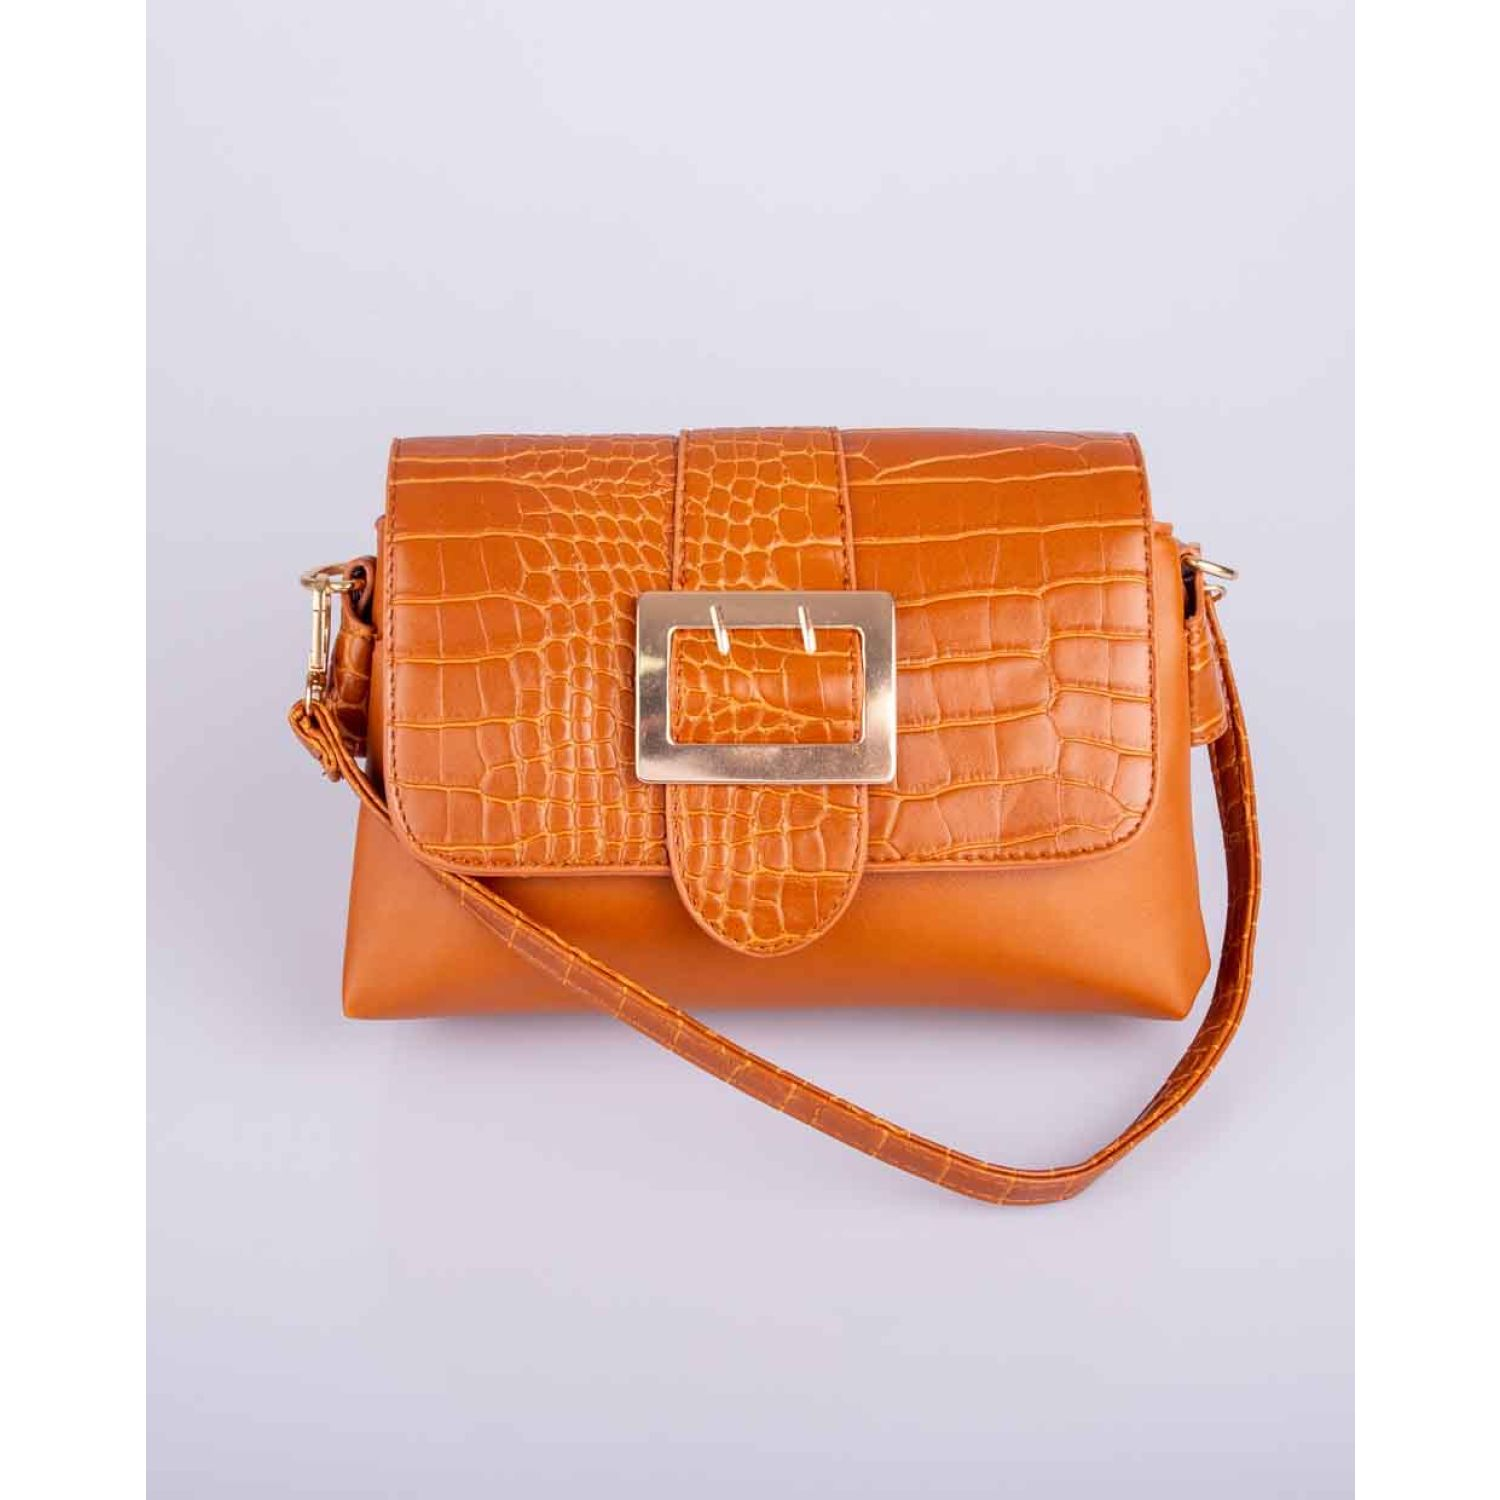 BE SIFRAH Cartera Monica Camel Carteras con Asa